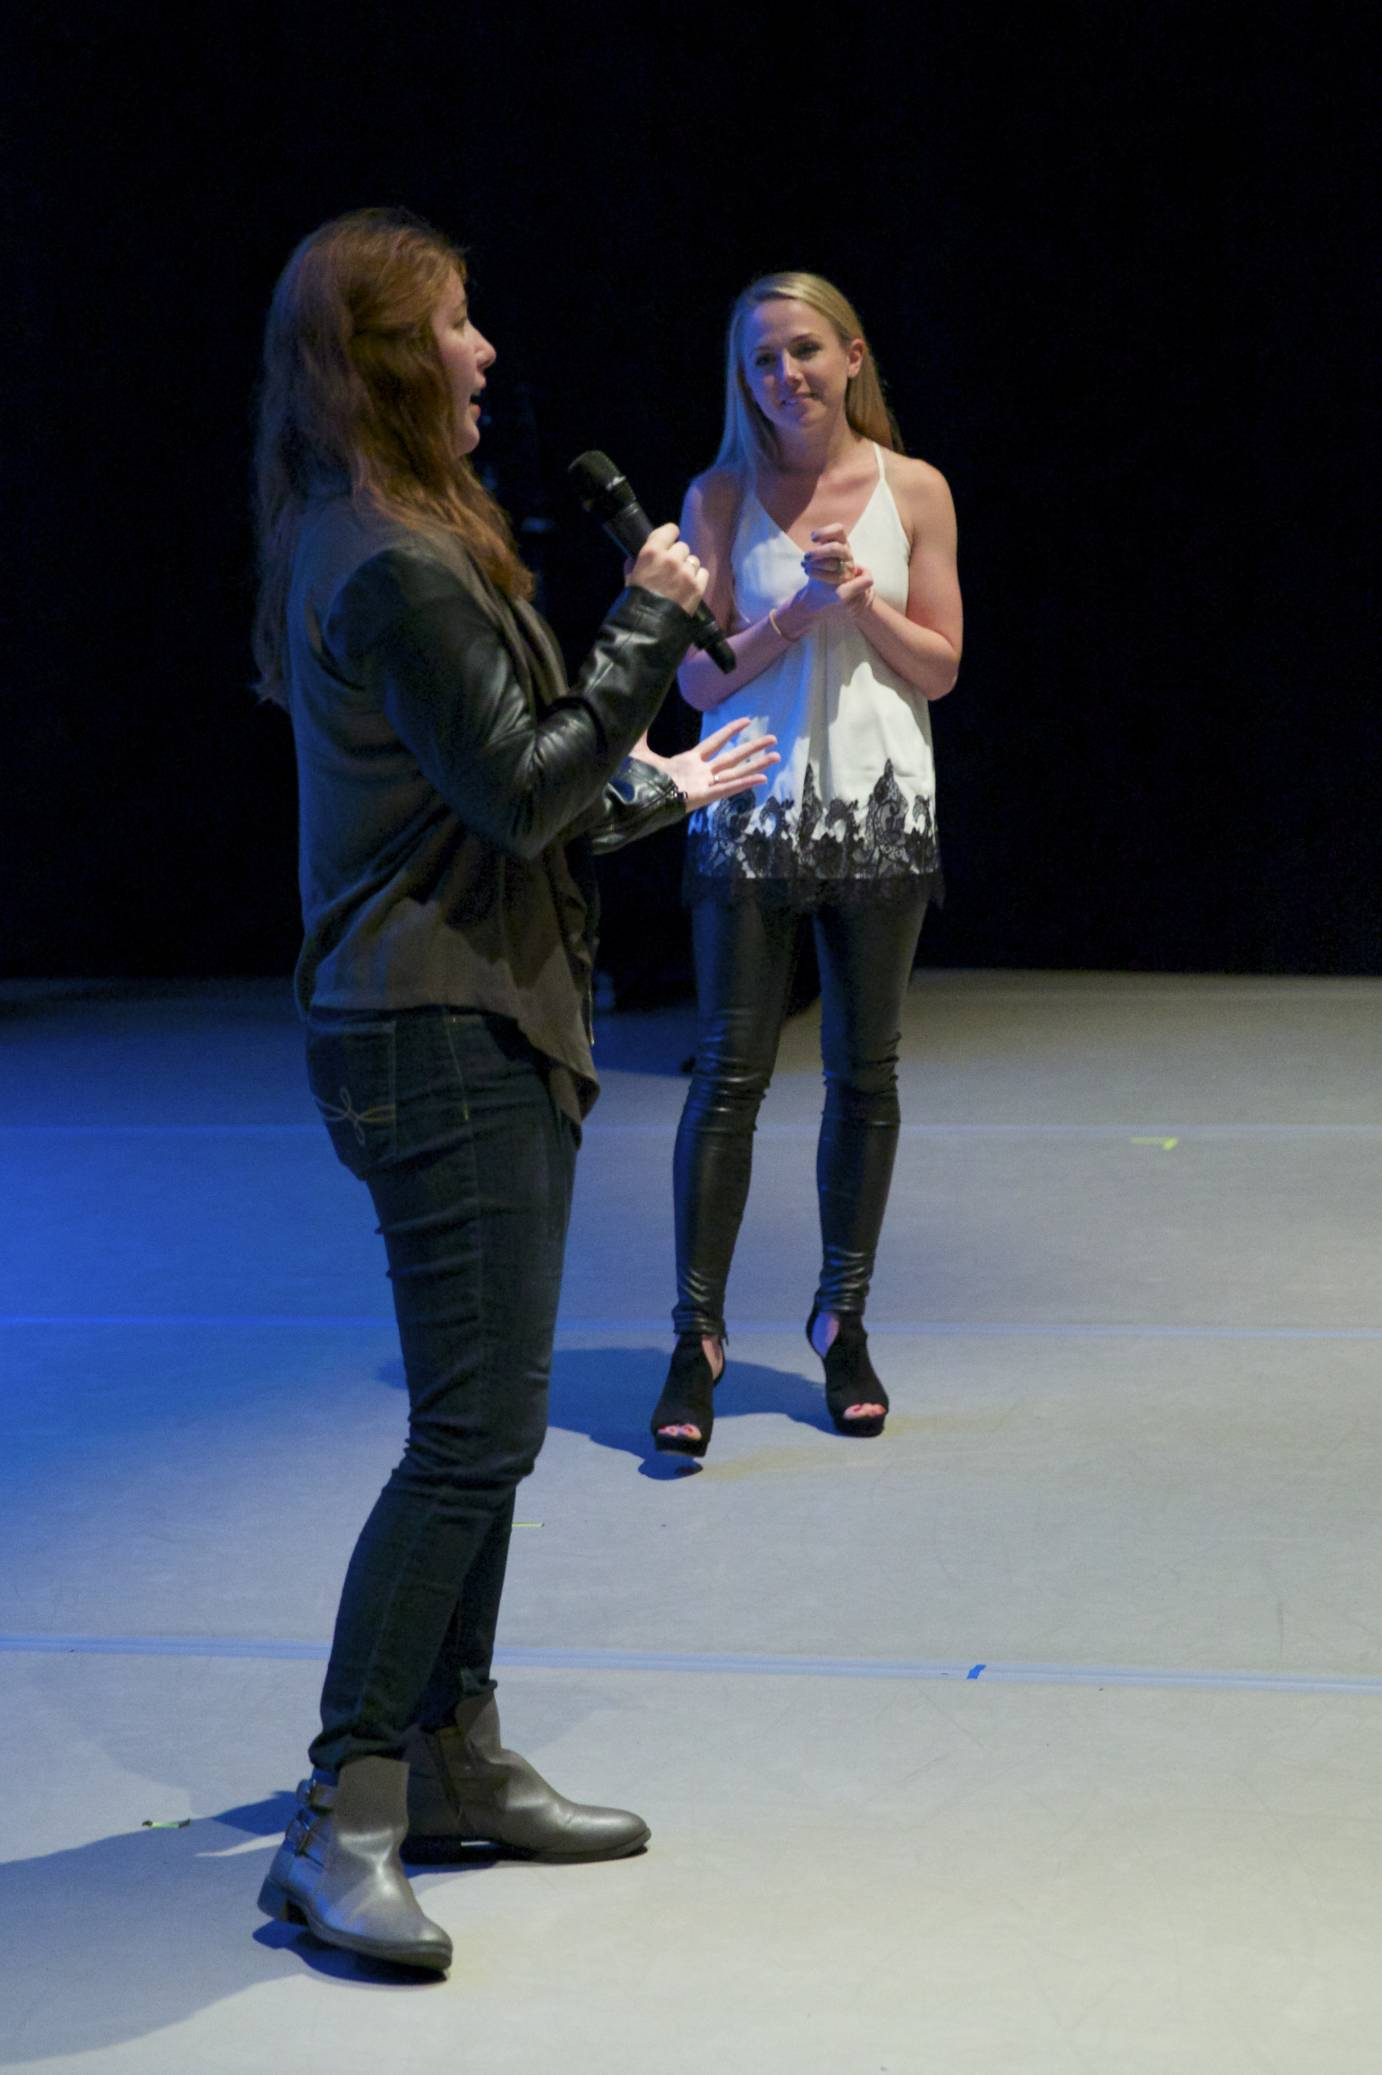 Two women stand on stage and talk about MorDance's performance